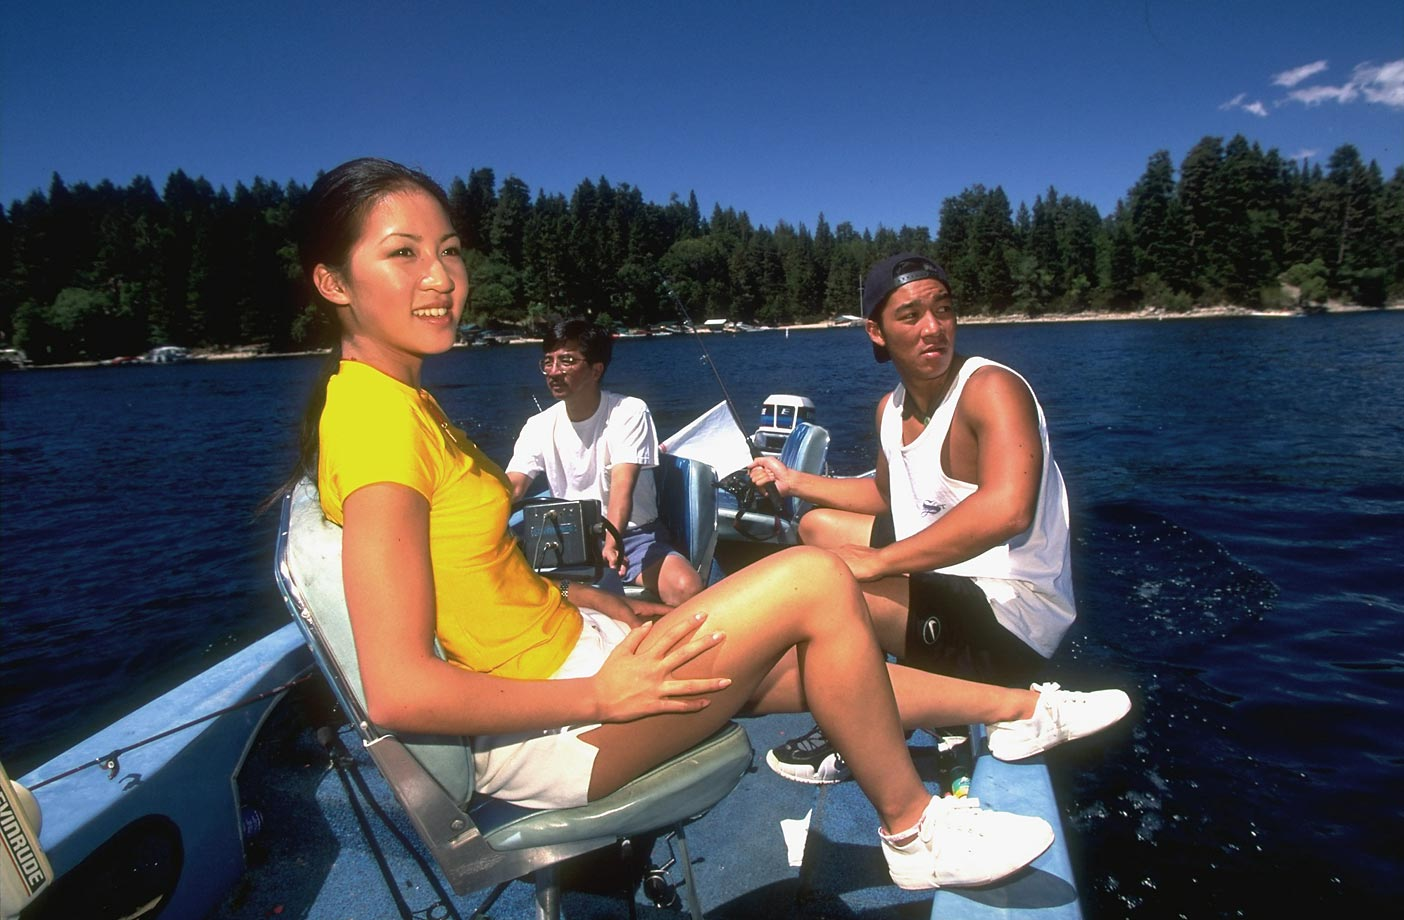 The two-time Olympic medalist and five-time world champion fishing with her father, Danny, and brother Ron in 1997. At that time, Kwan was still a year away from her first Olympic appearance -- a silver medal at the Nagano Olympics. In 2002, she added a bronze.